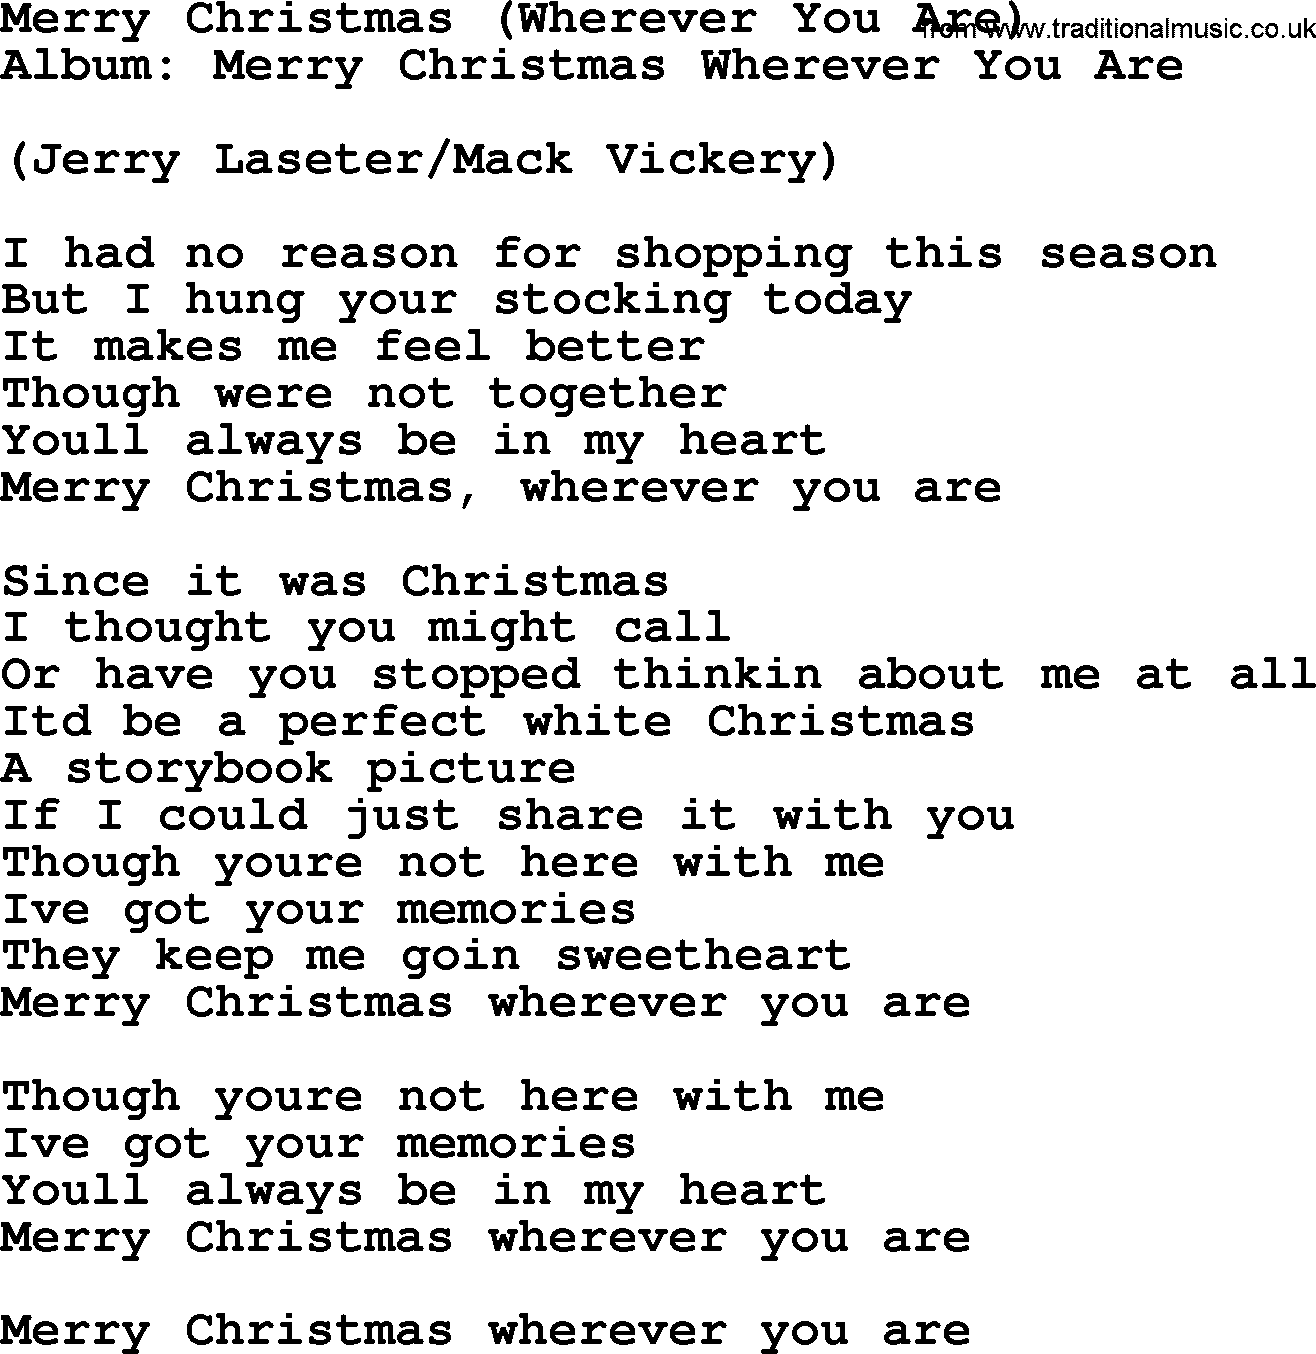 Merry Christmas Wherever You Are, by George Strait - lyrics